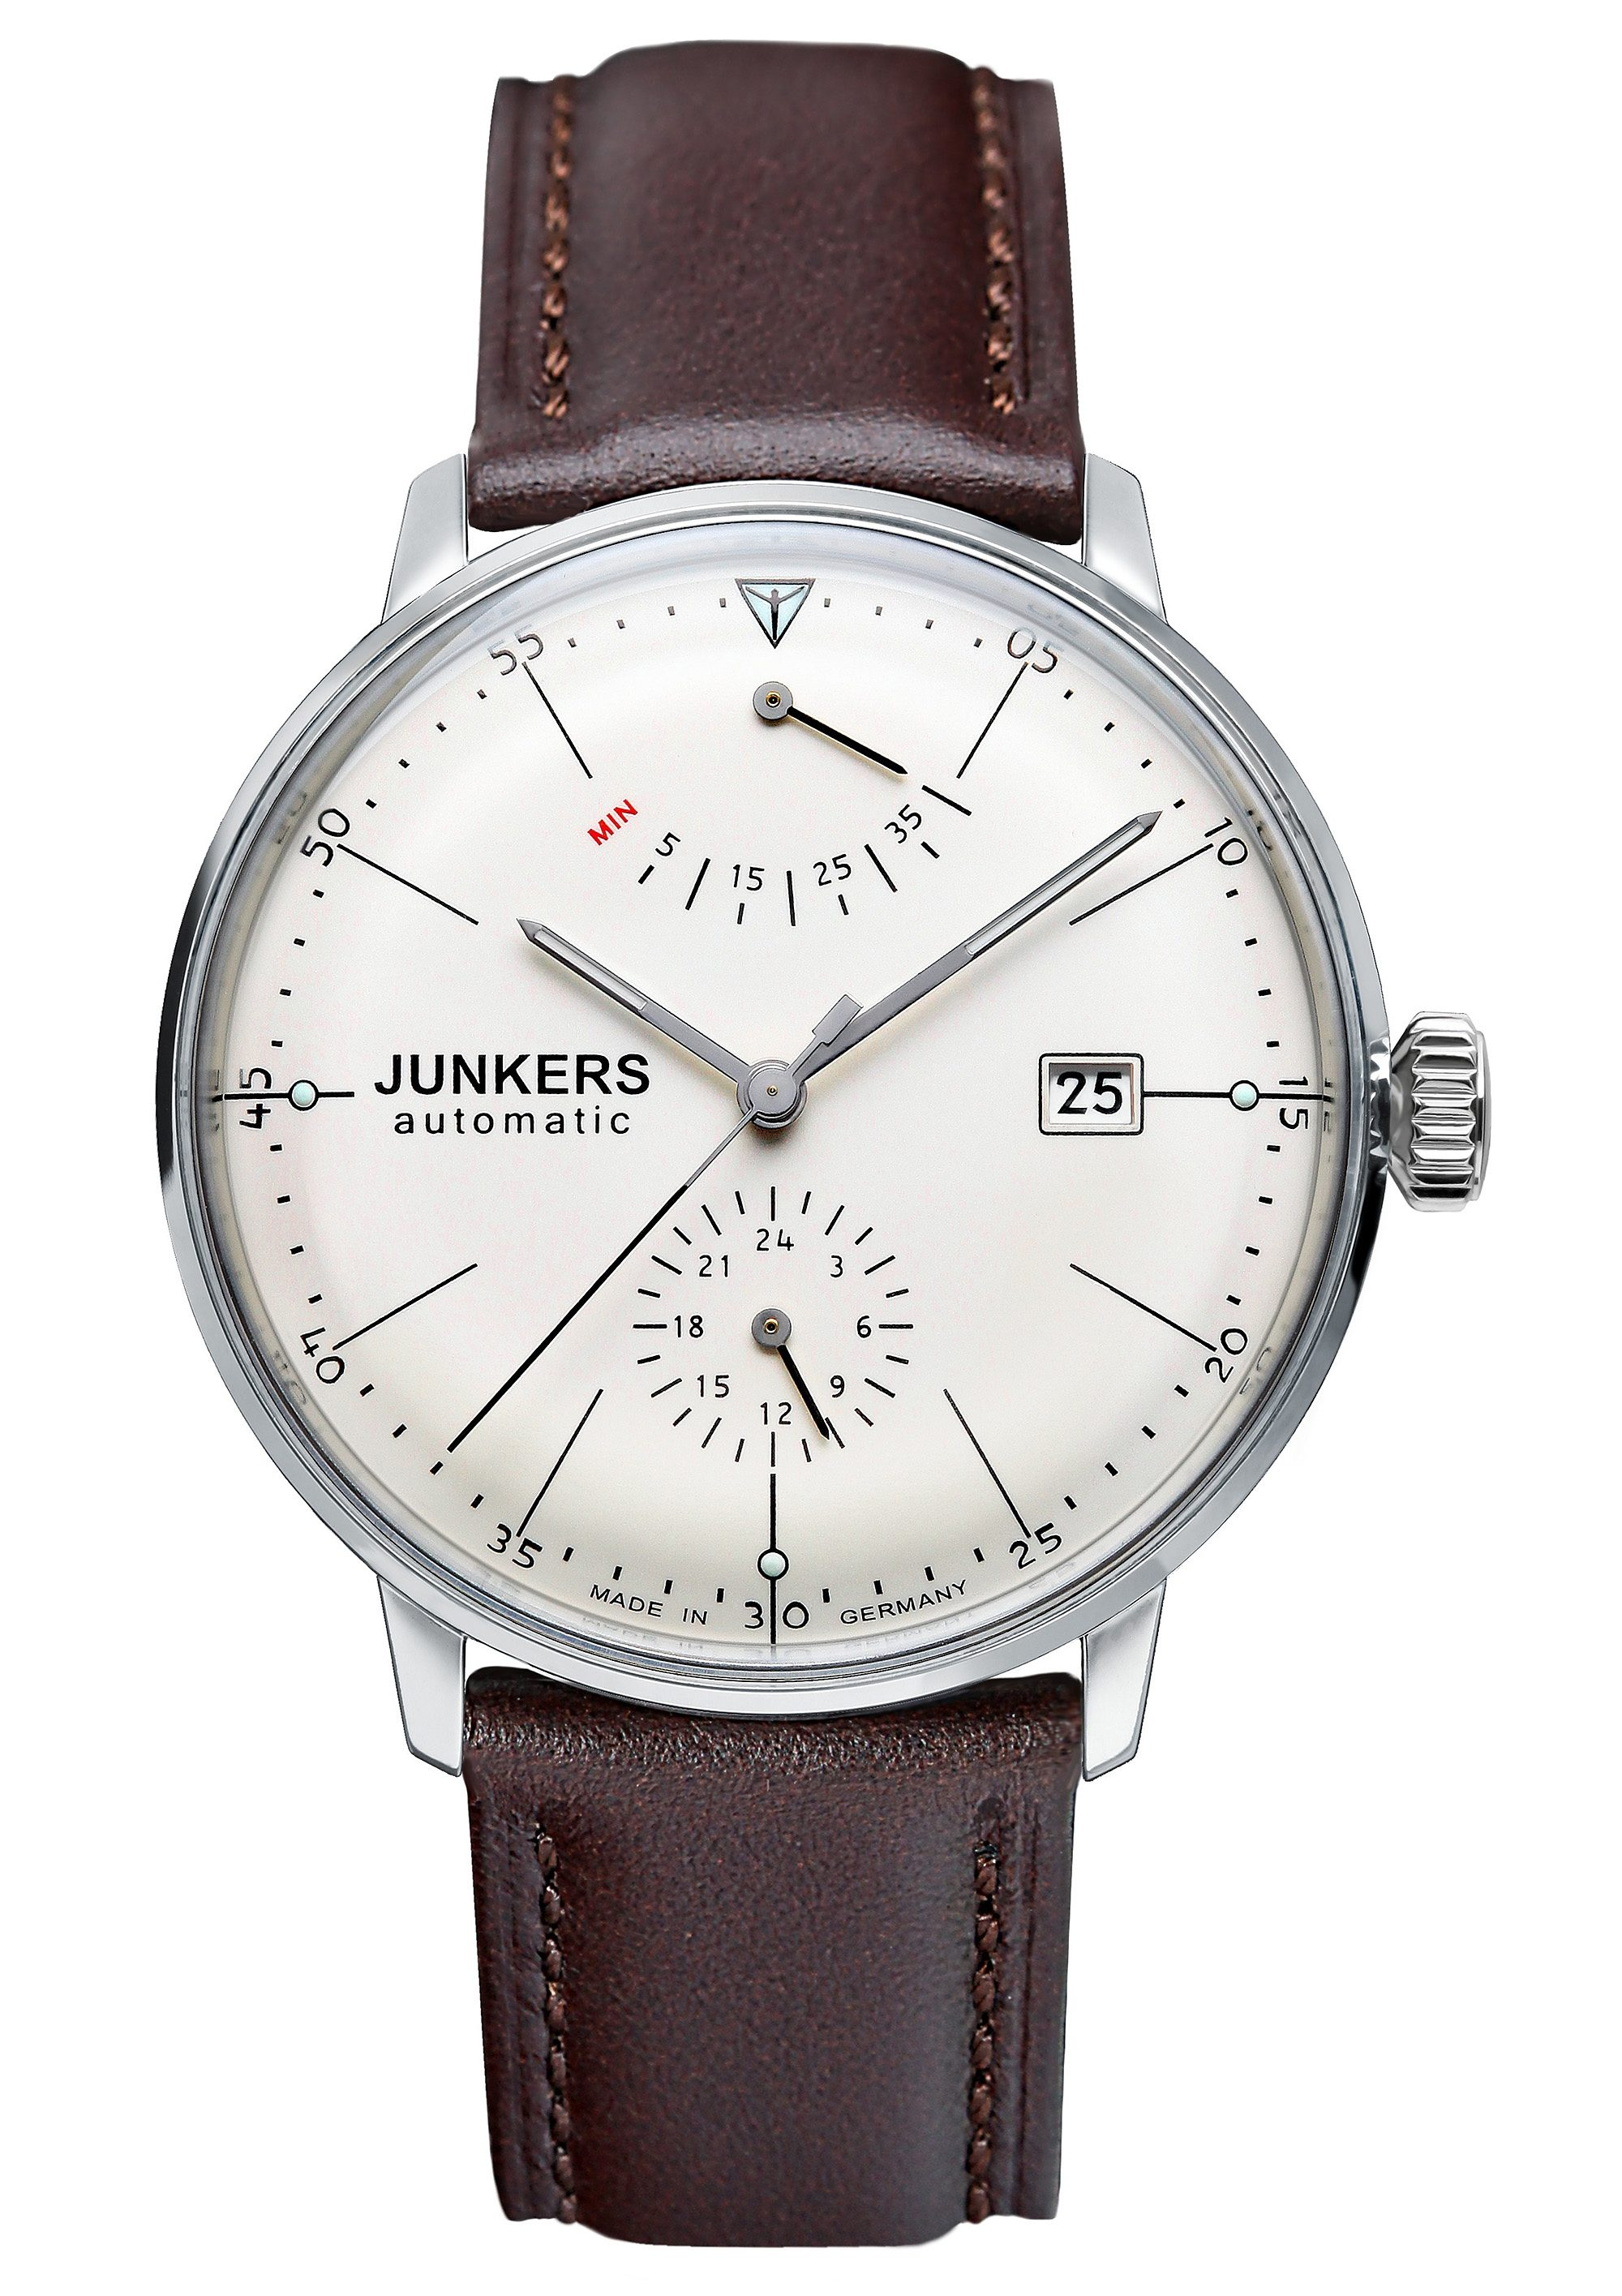 Junkers-Uhren Automatikuhr »BAUHAUS, 6060-5« Made in Germany